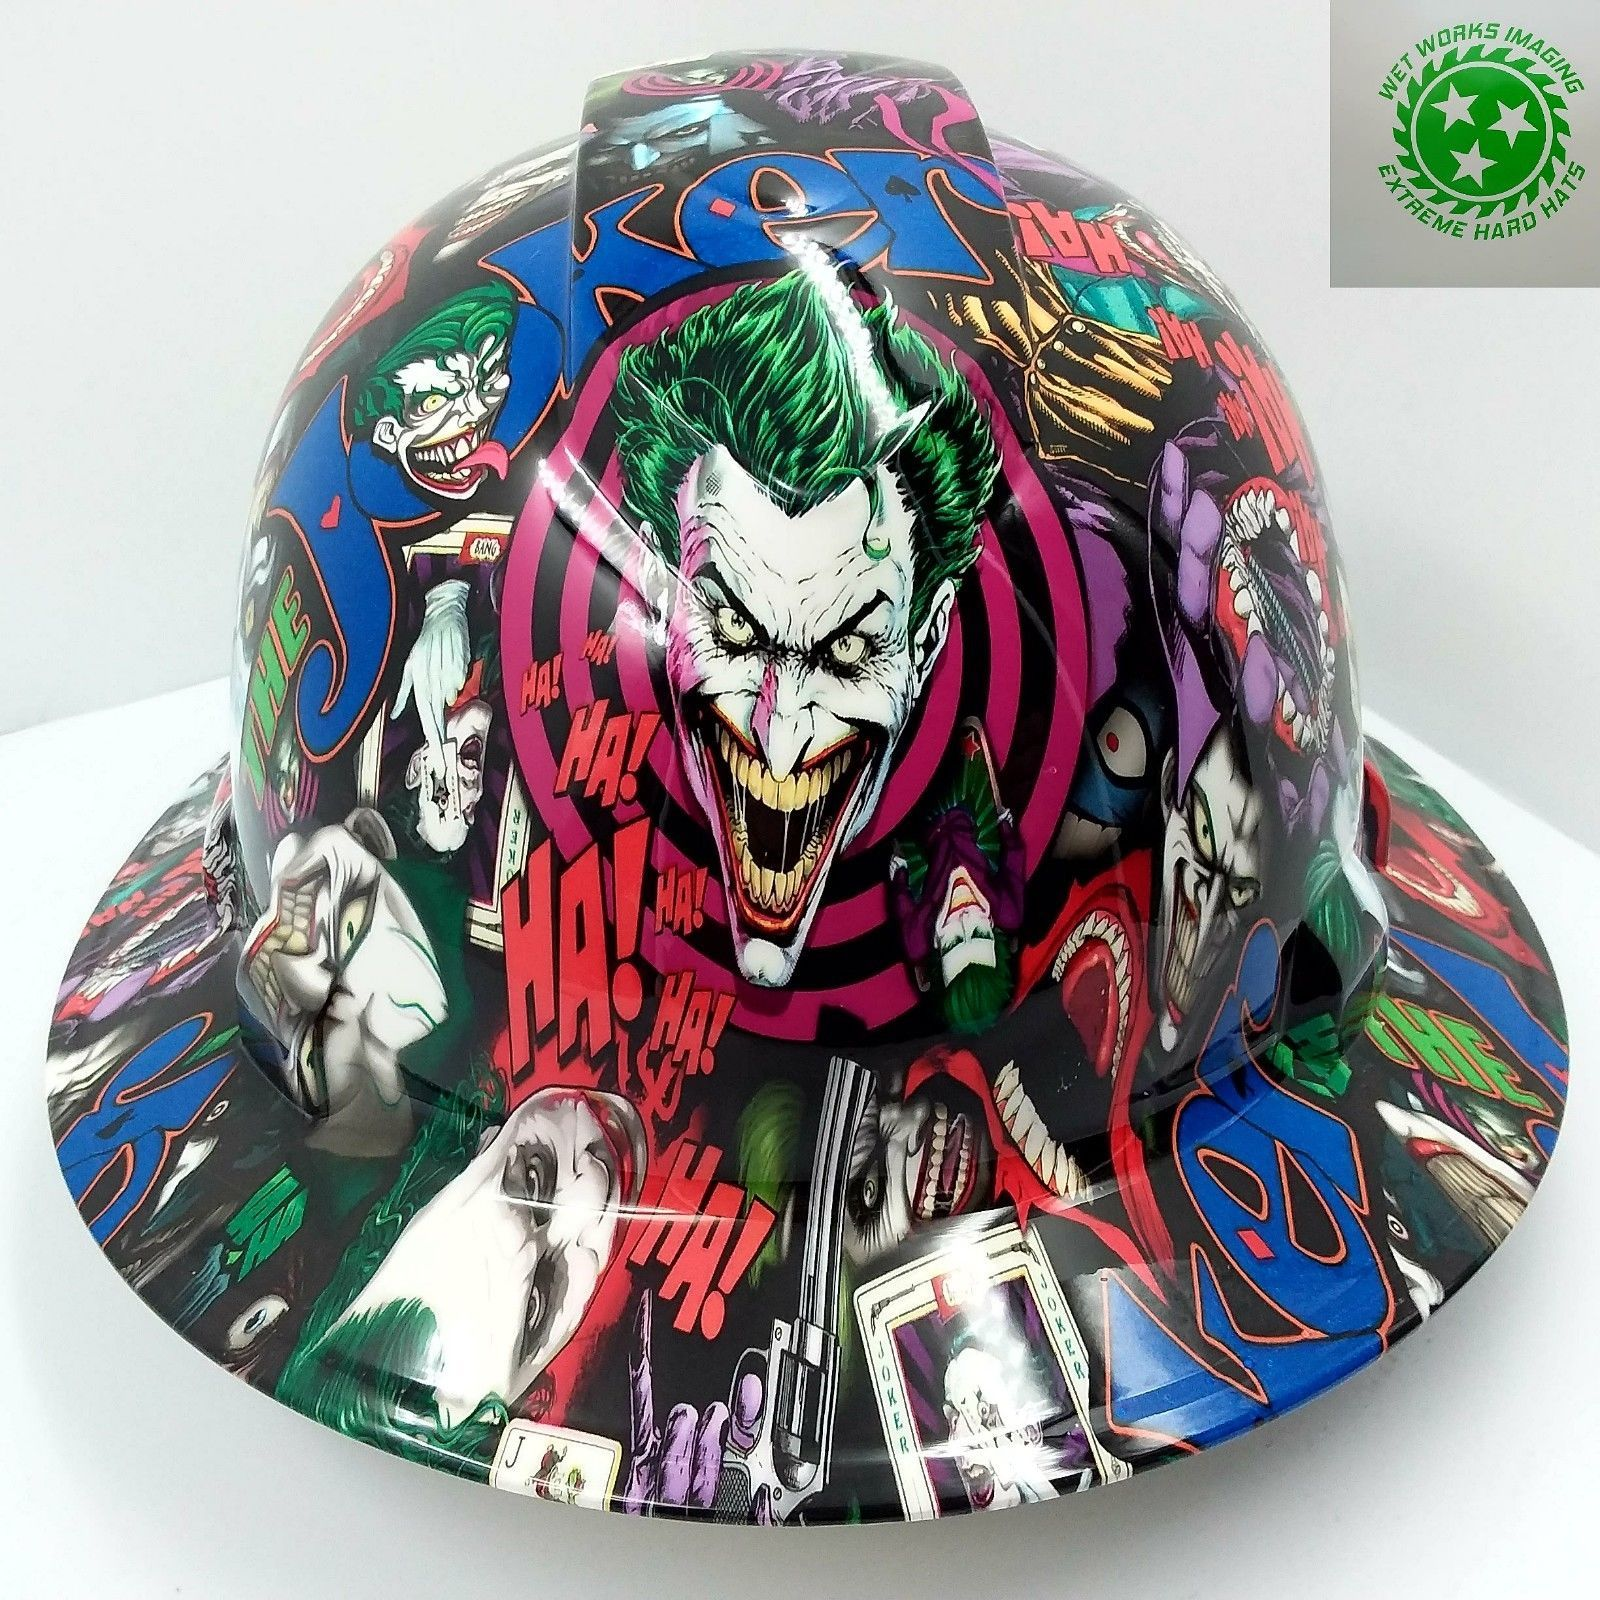 Details about FULL BRIM Hard Hat custom hydro dipped , NEW